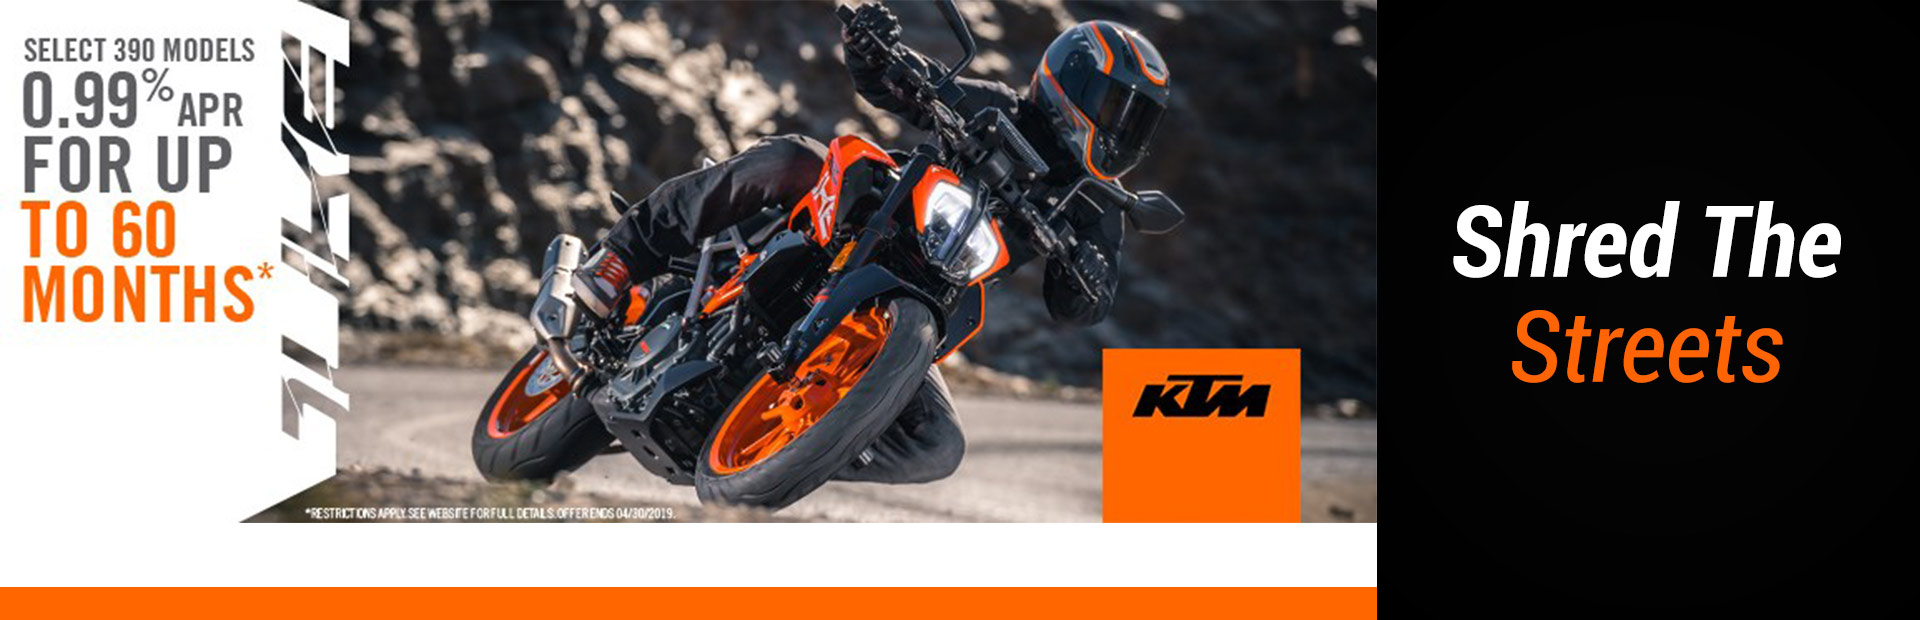 KTM: Shred the Streets